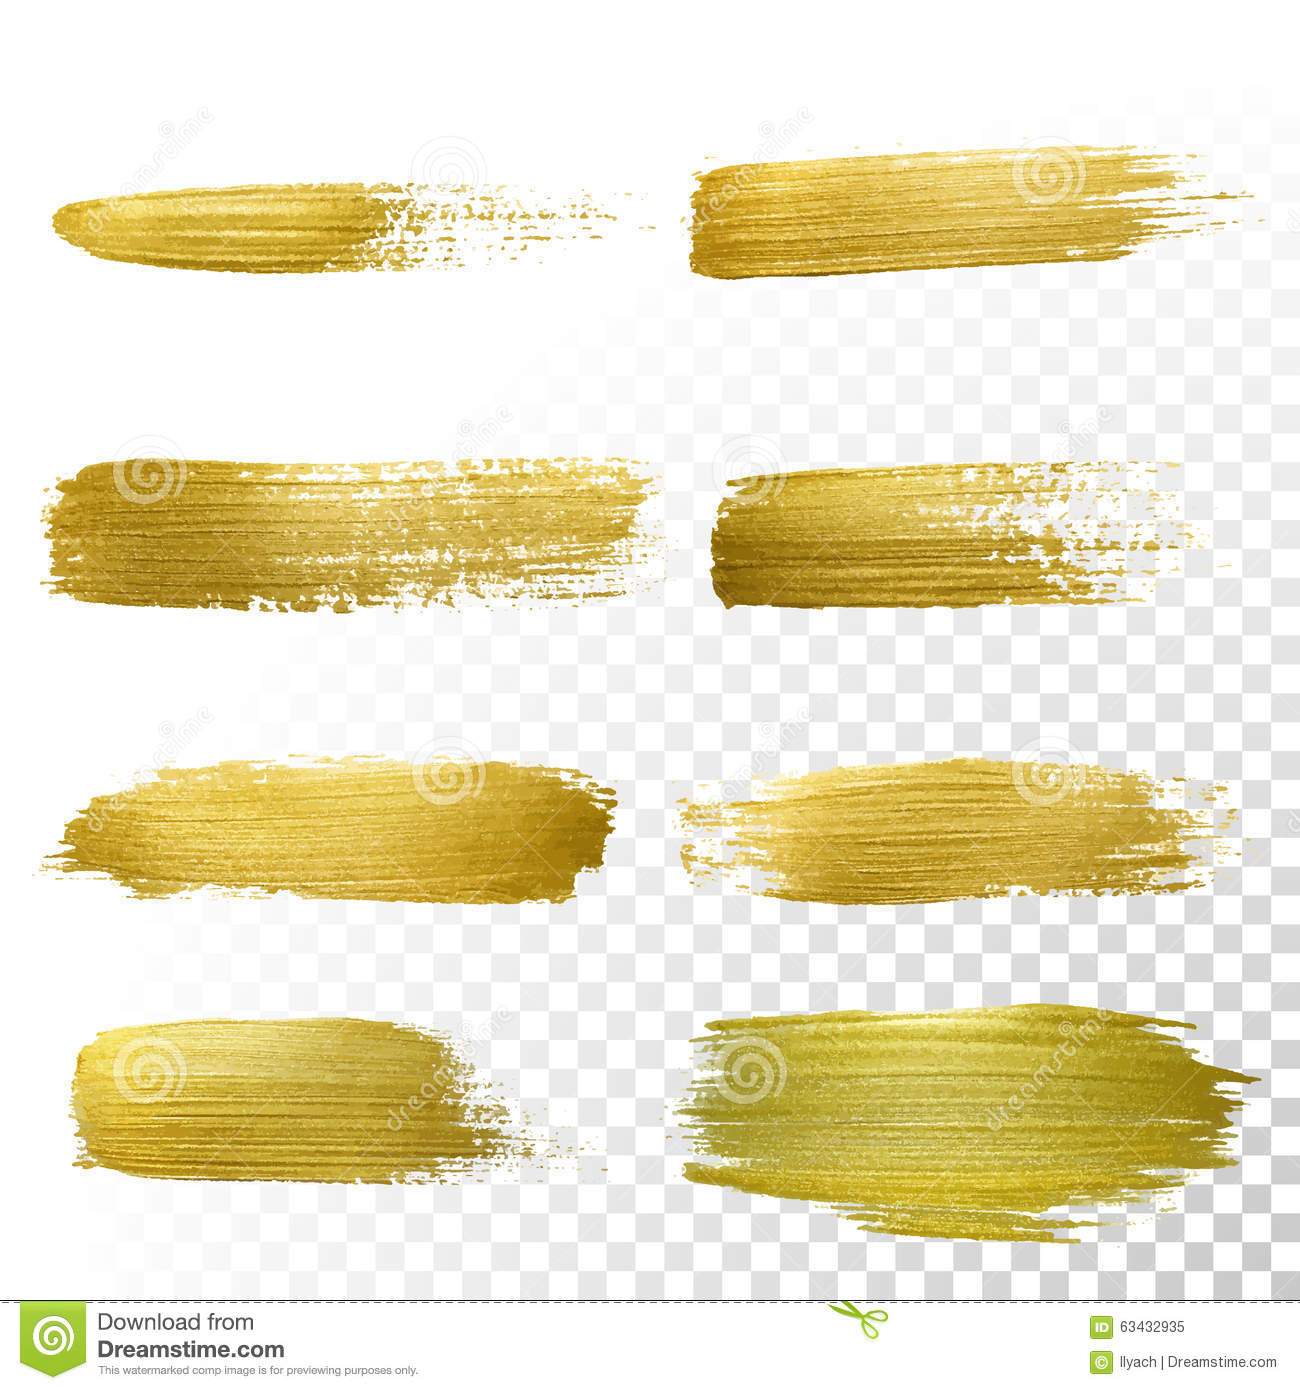 Grunge Stain Collection: Vector Gold Paint Smear Stroke Stain Set. Stock Vector